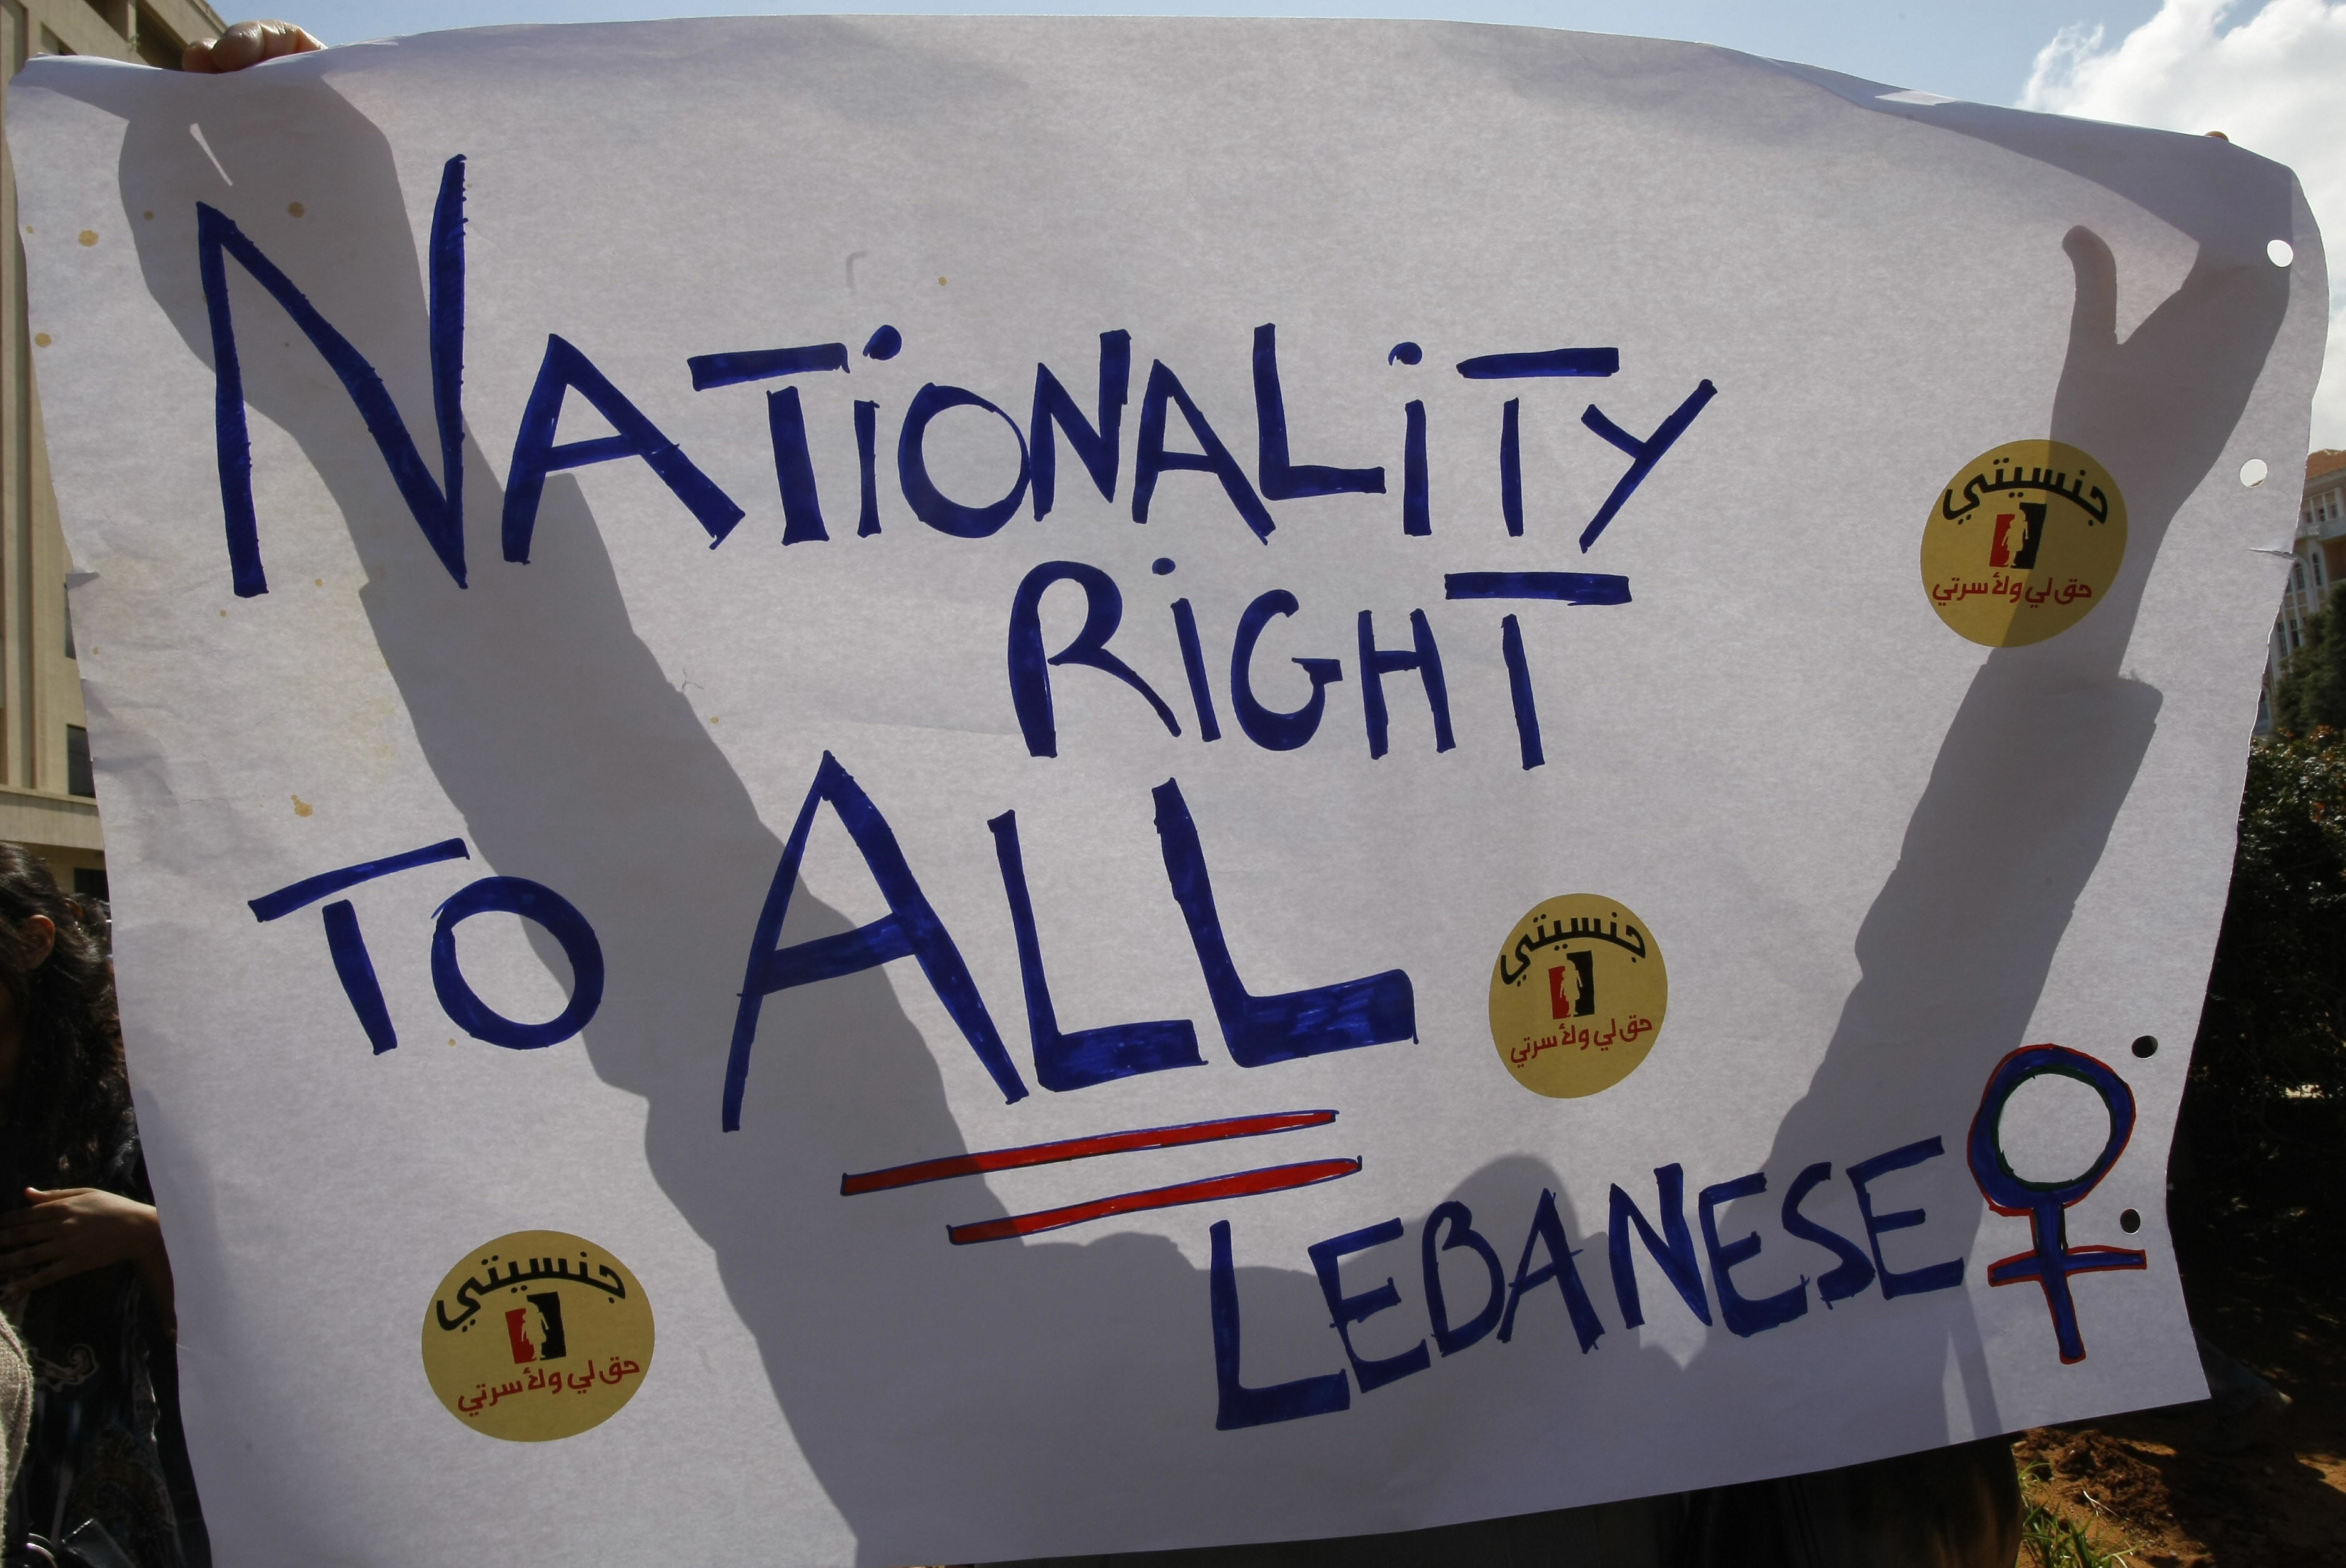 RAMZI HAIDAR/AFP/Getty Images. A Lebanese woman holds up a banner during a demonstration to demand full nationality rights for women, on April 9, 2009, outside parliament in Beirut.